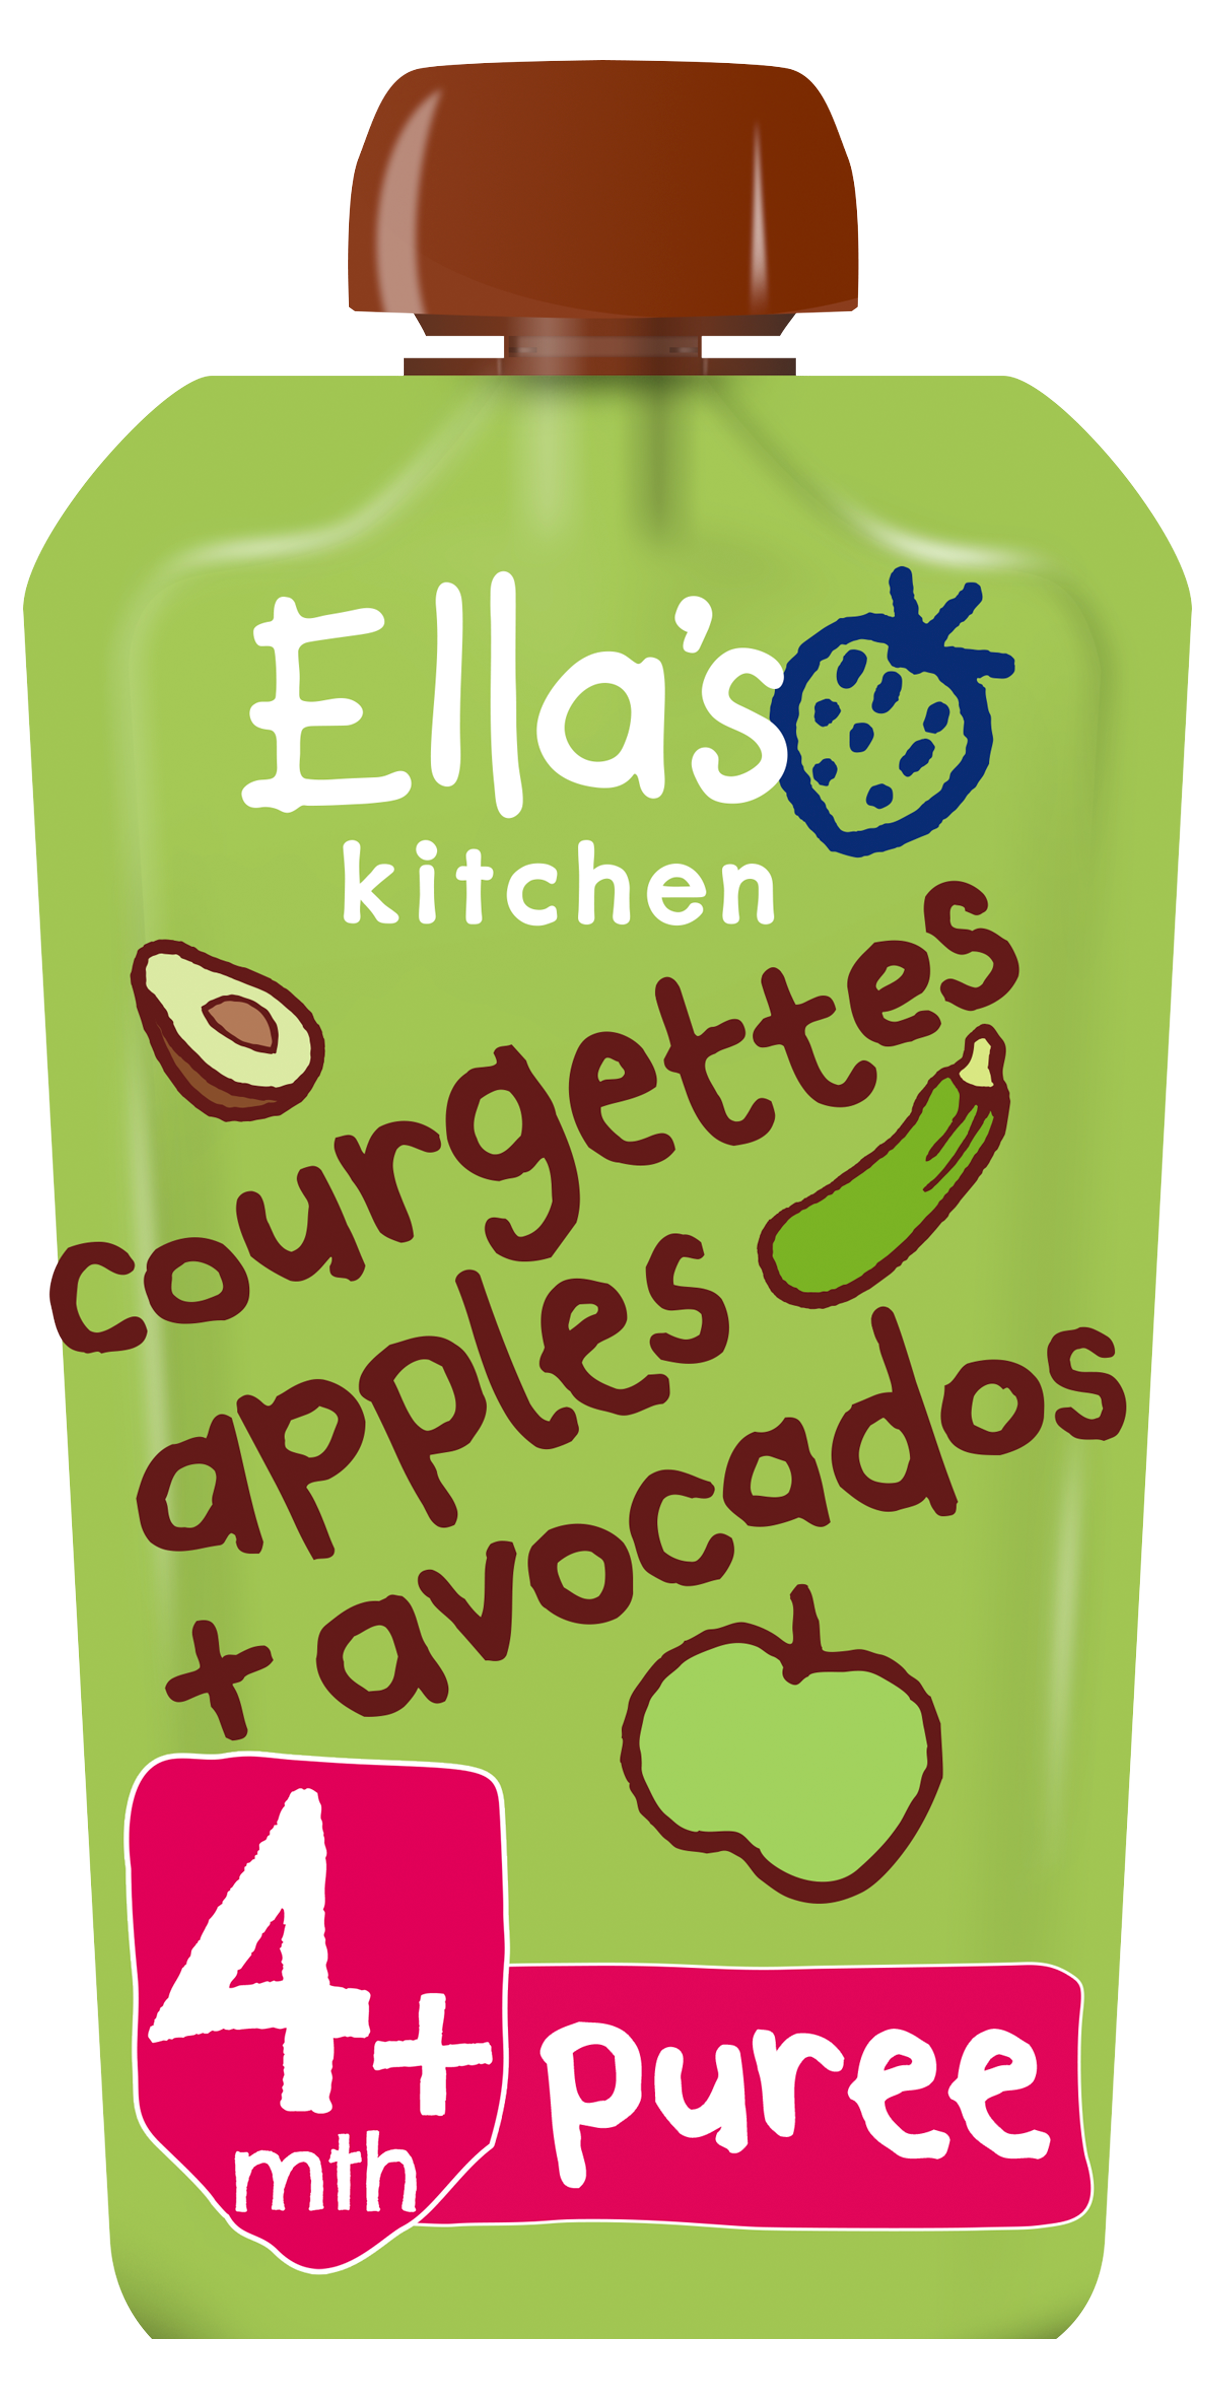 Ellas kitchen courgettes apples avocados pouch front of pack O